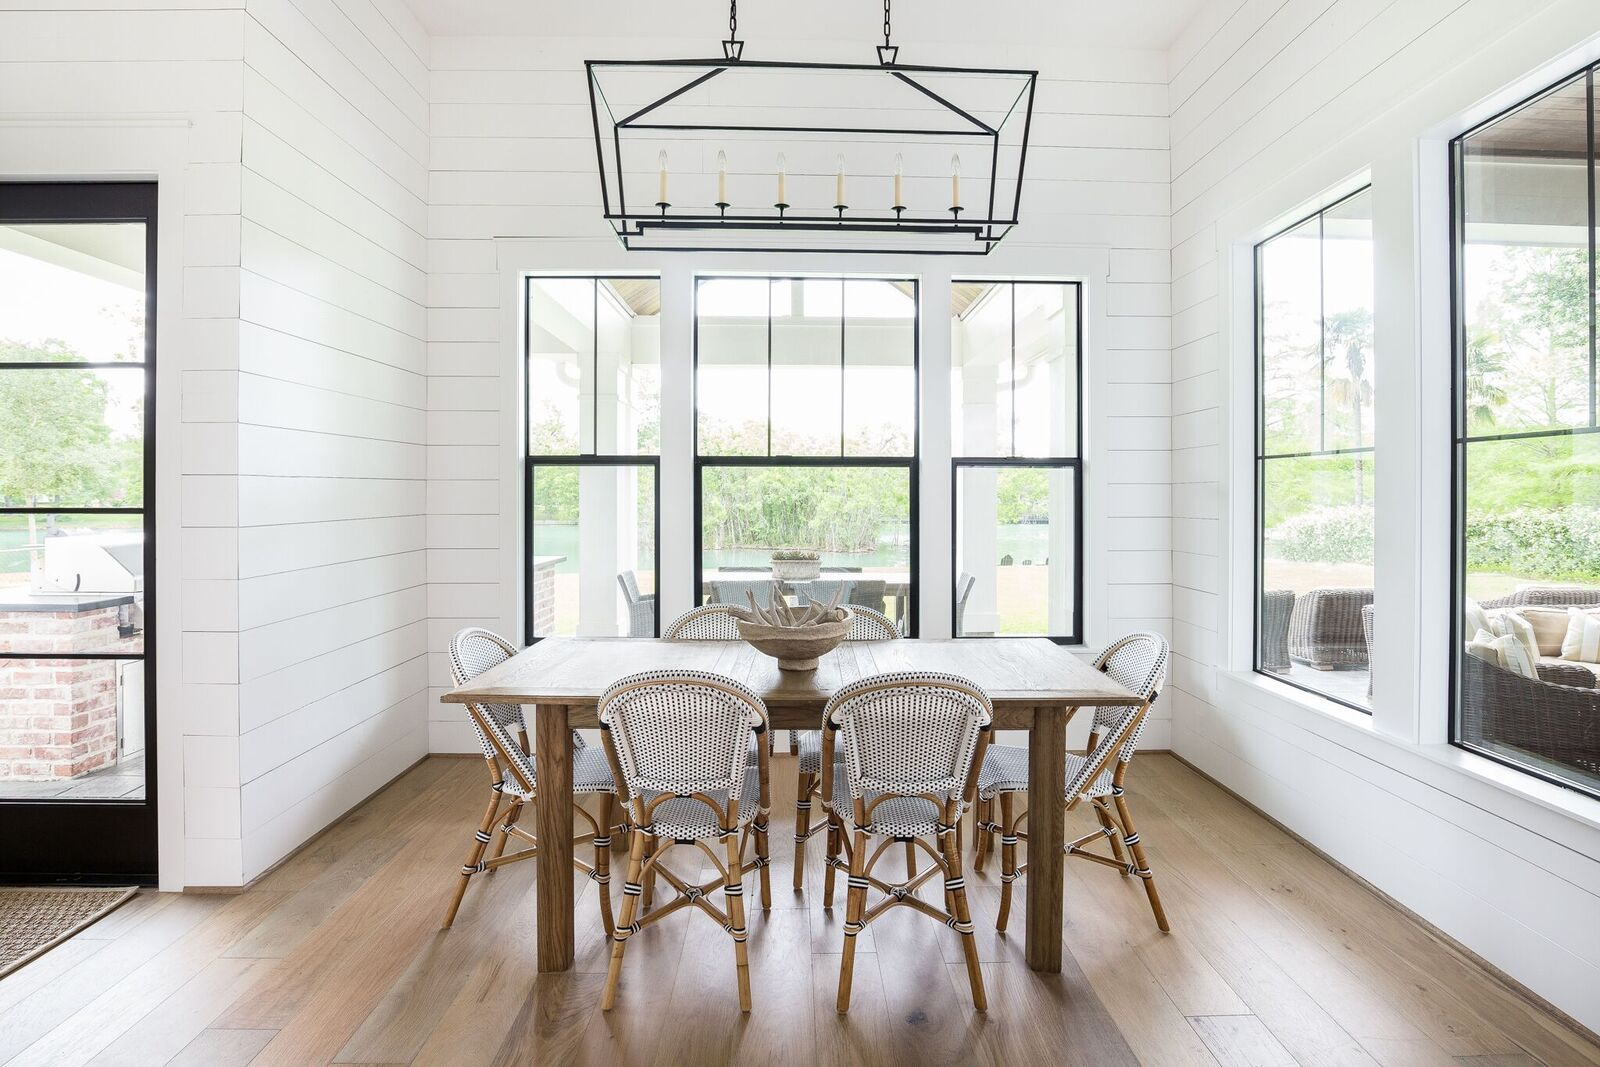 Come see this modern farmhouse featuring a breakfast nook with shiplap walls and black windows with white trim.